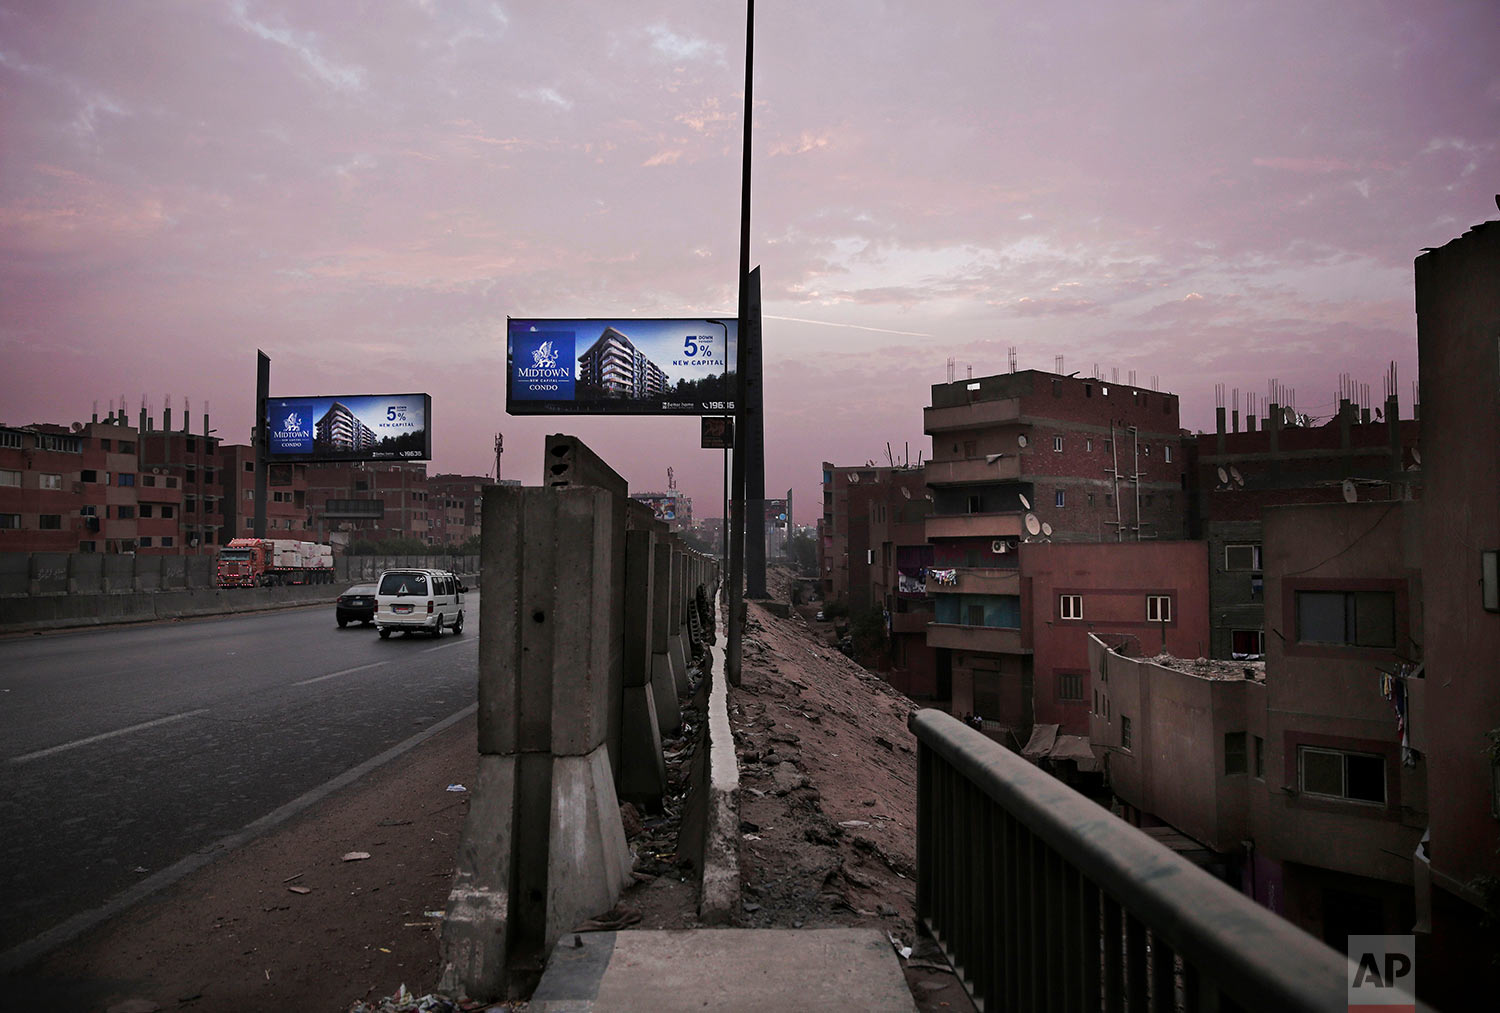 In this Oct. 23, 2018 photo, billboards promoting a new residential housing compound overlook a crowded run-down neighborhood, on the ring road, in Cairo, Egypt. (AP Photo/Nariman El-Mofty)